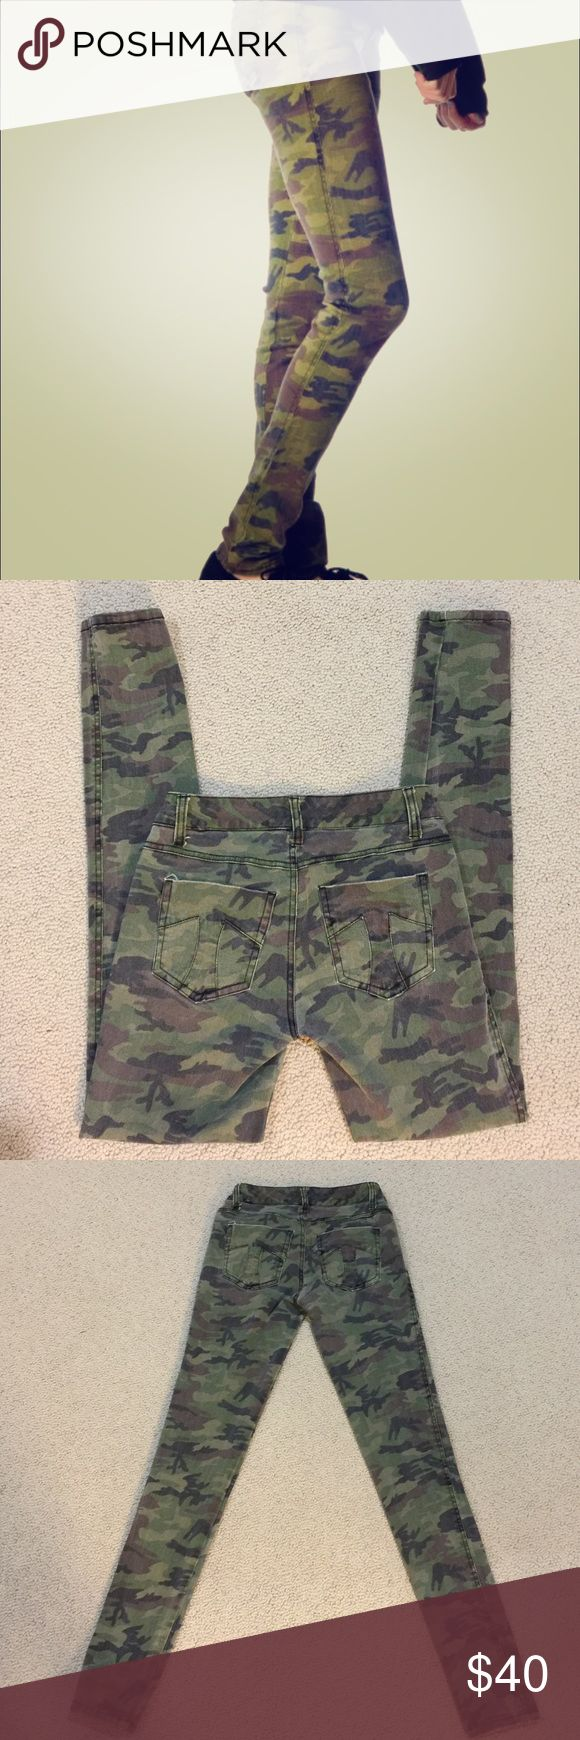 TRIPP NYC Camo skinnies size 26 Gently worn , size 26/3 inseam is 32 inches, skull stud design, Tripp nyc Pants Skinny